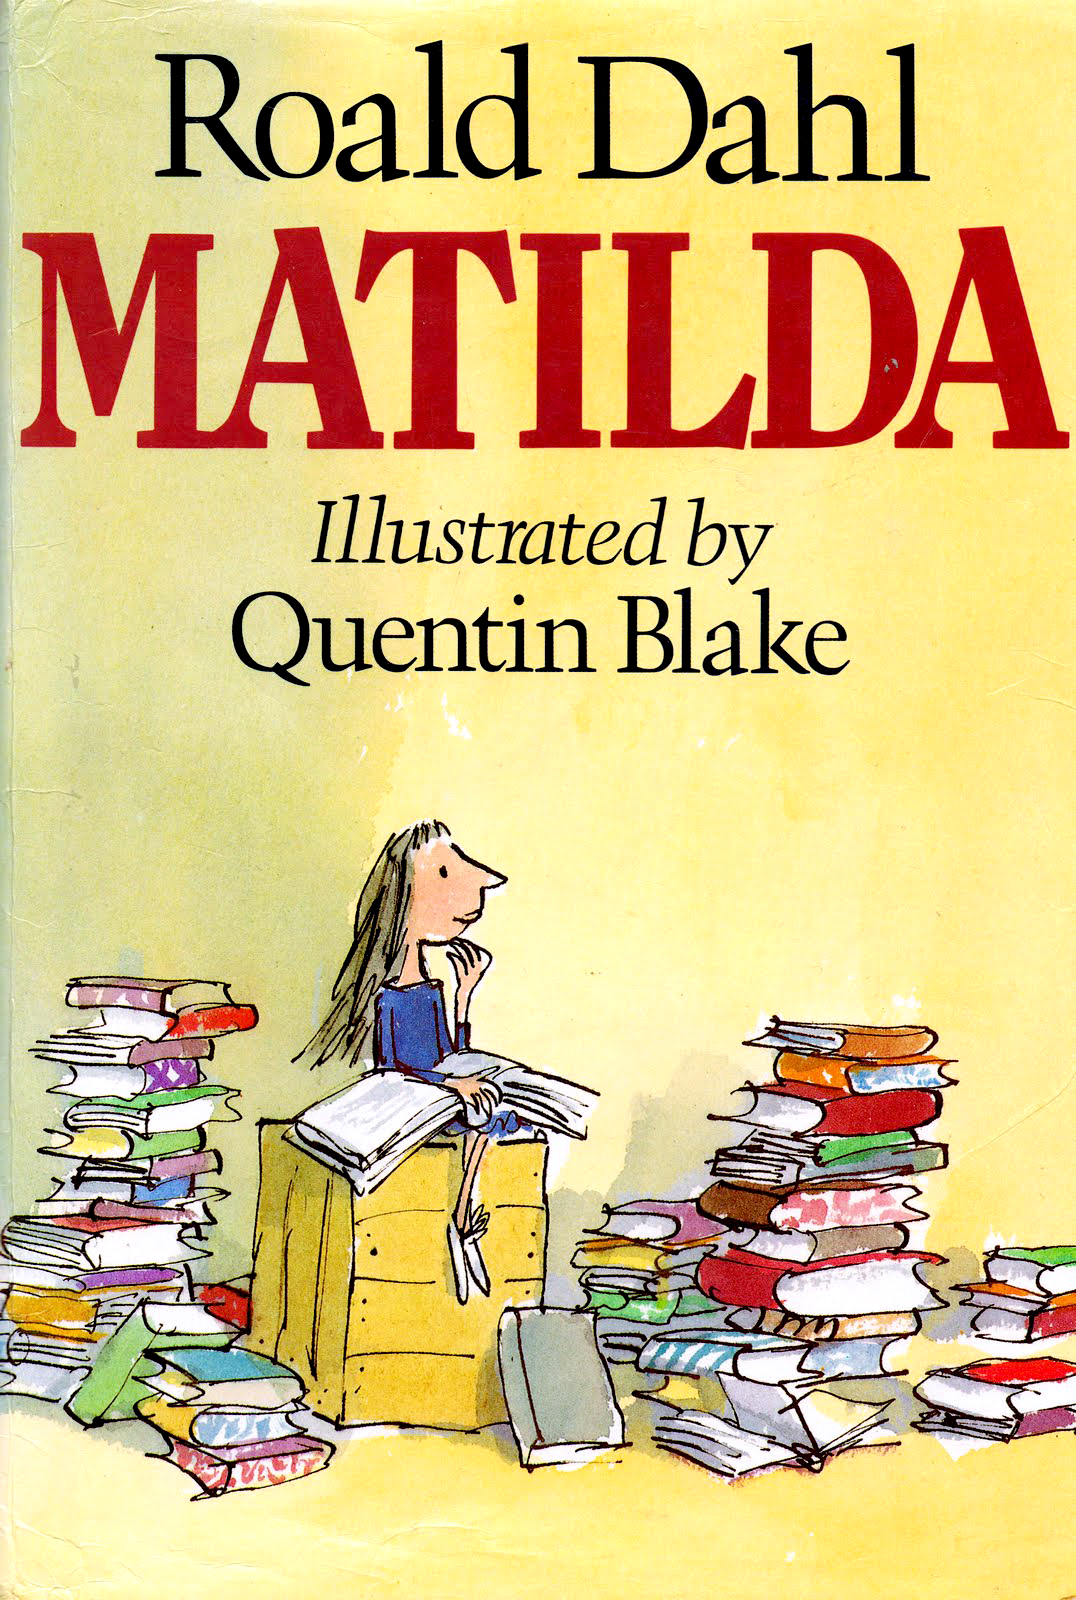 Image result for matilda original cover